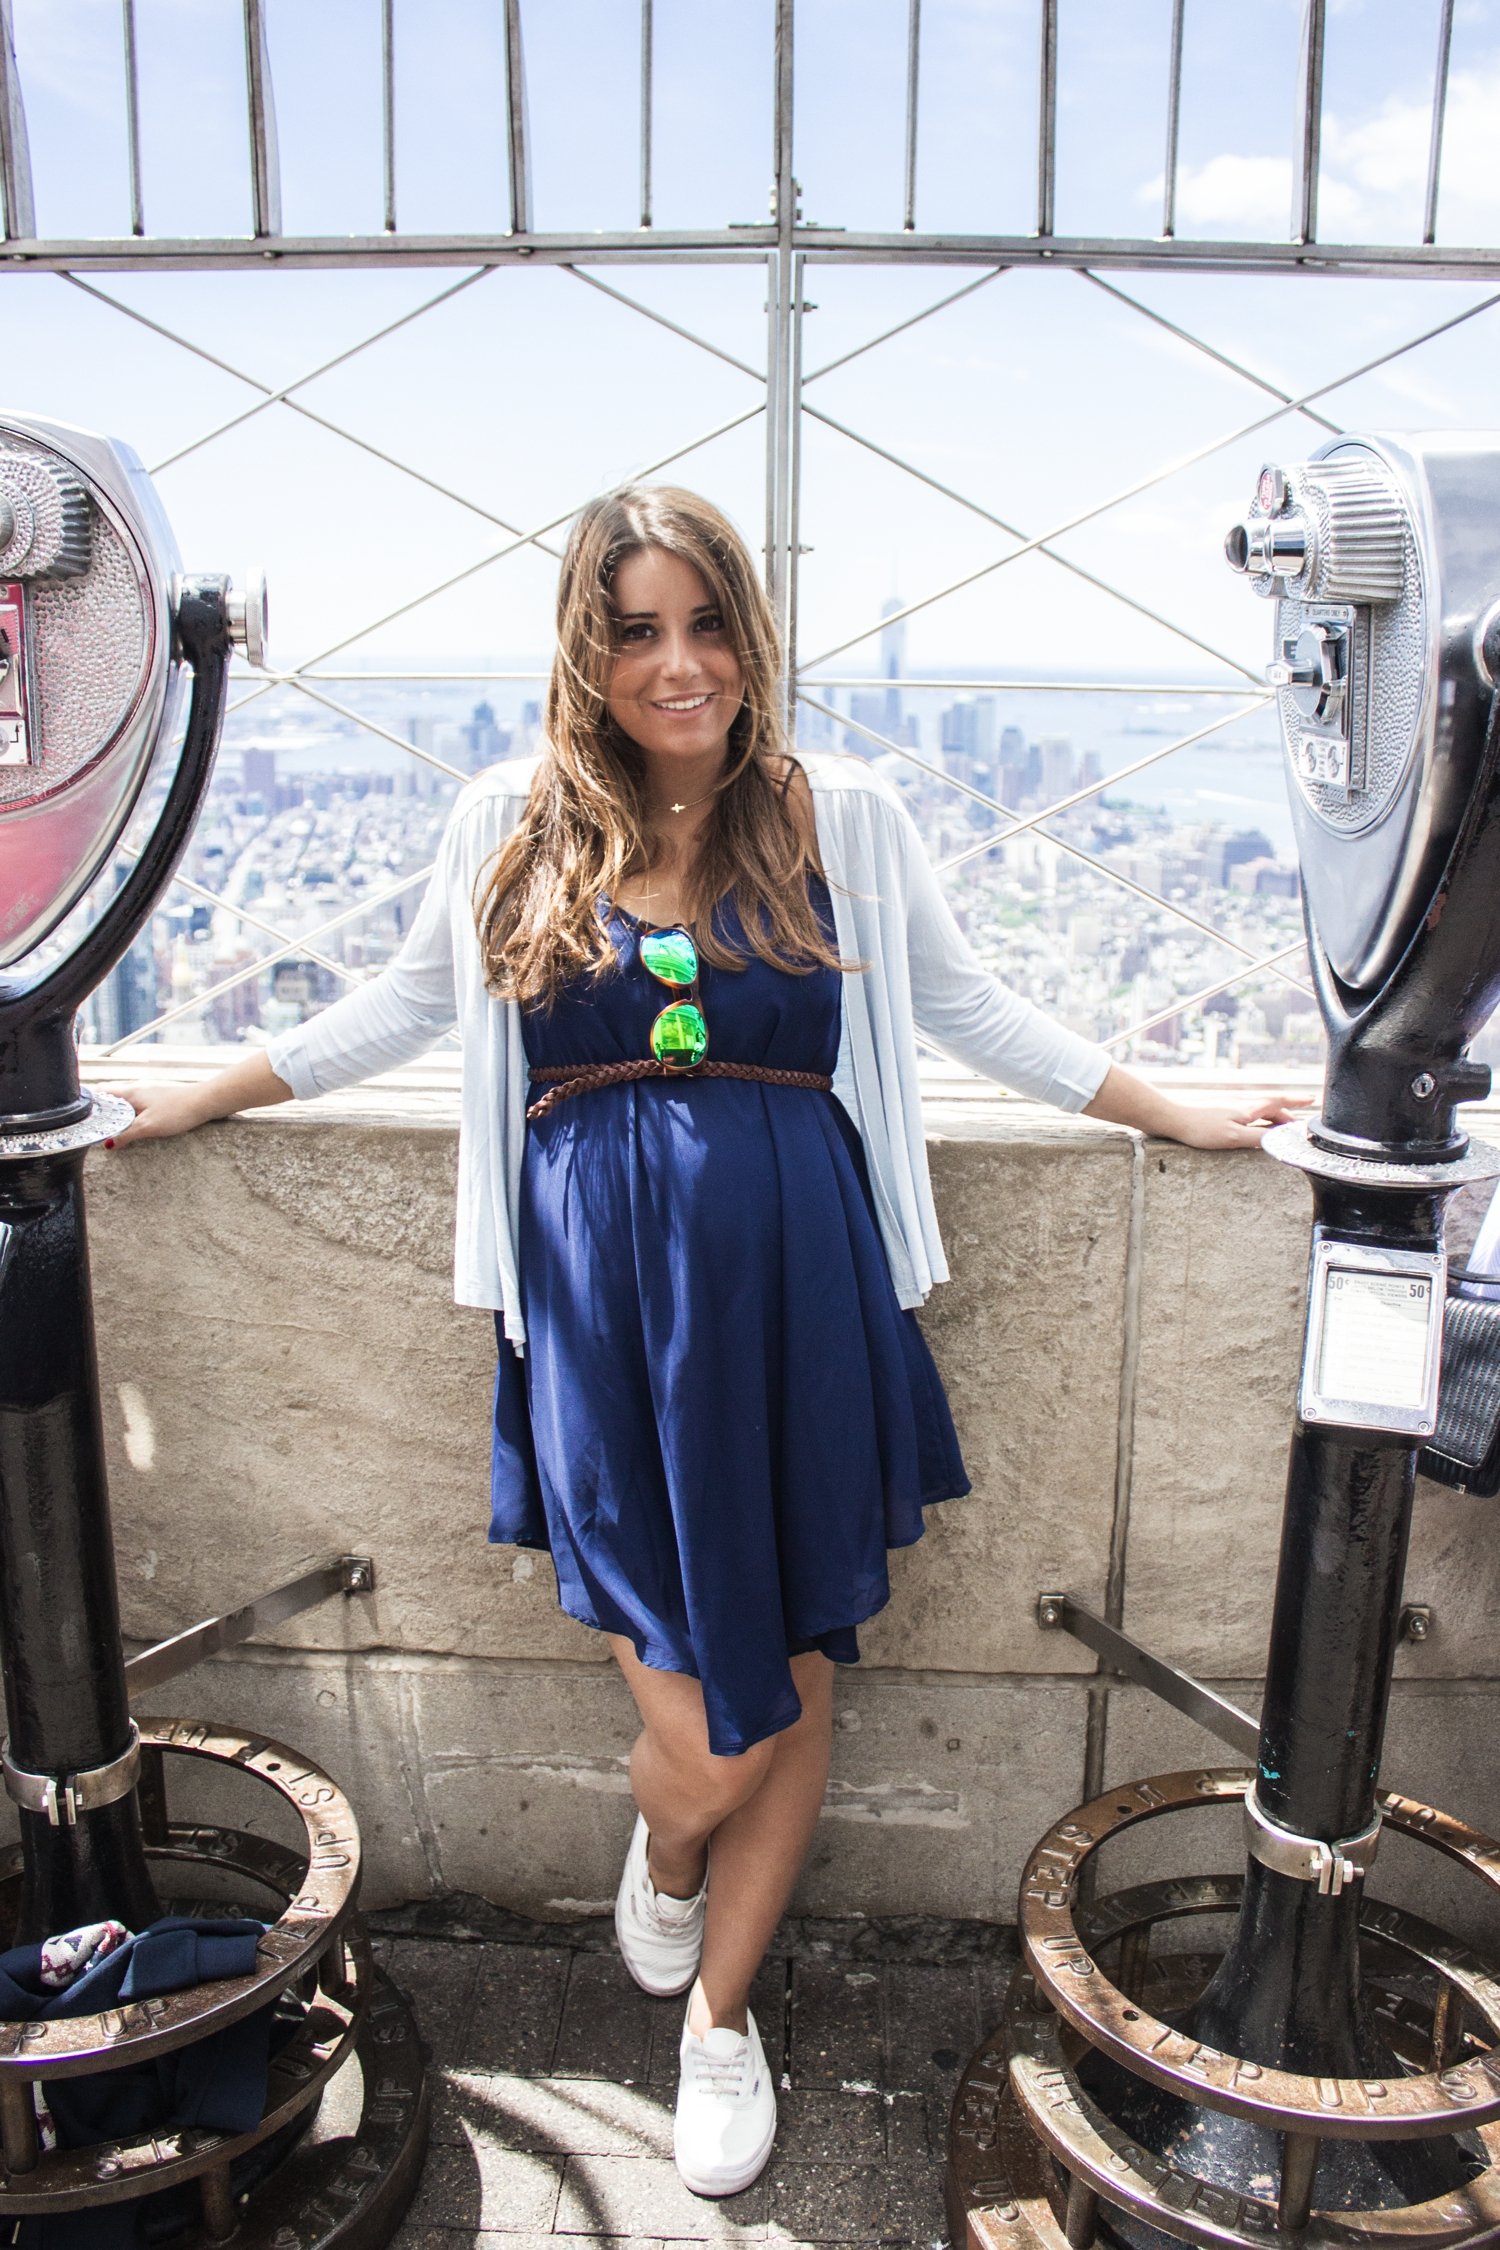 loreto_made_in_style_new_york_travel_blue_dress_empire_state_white_vans_leather-18